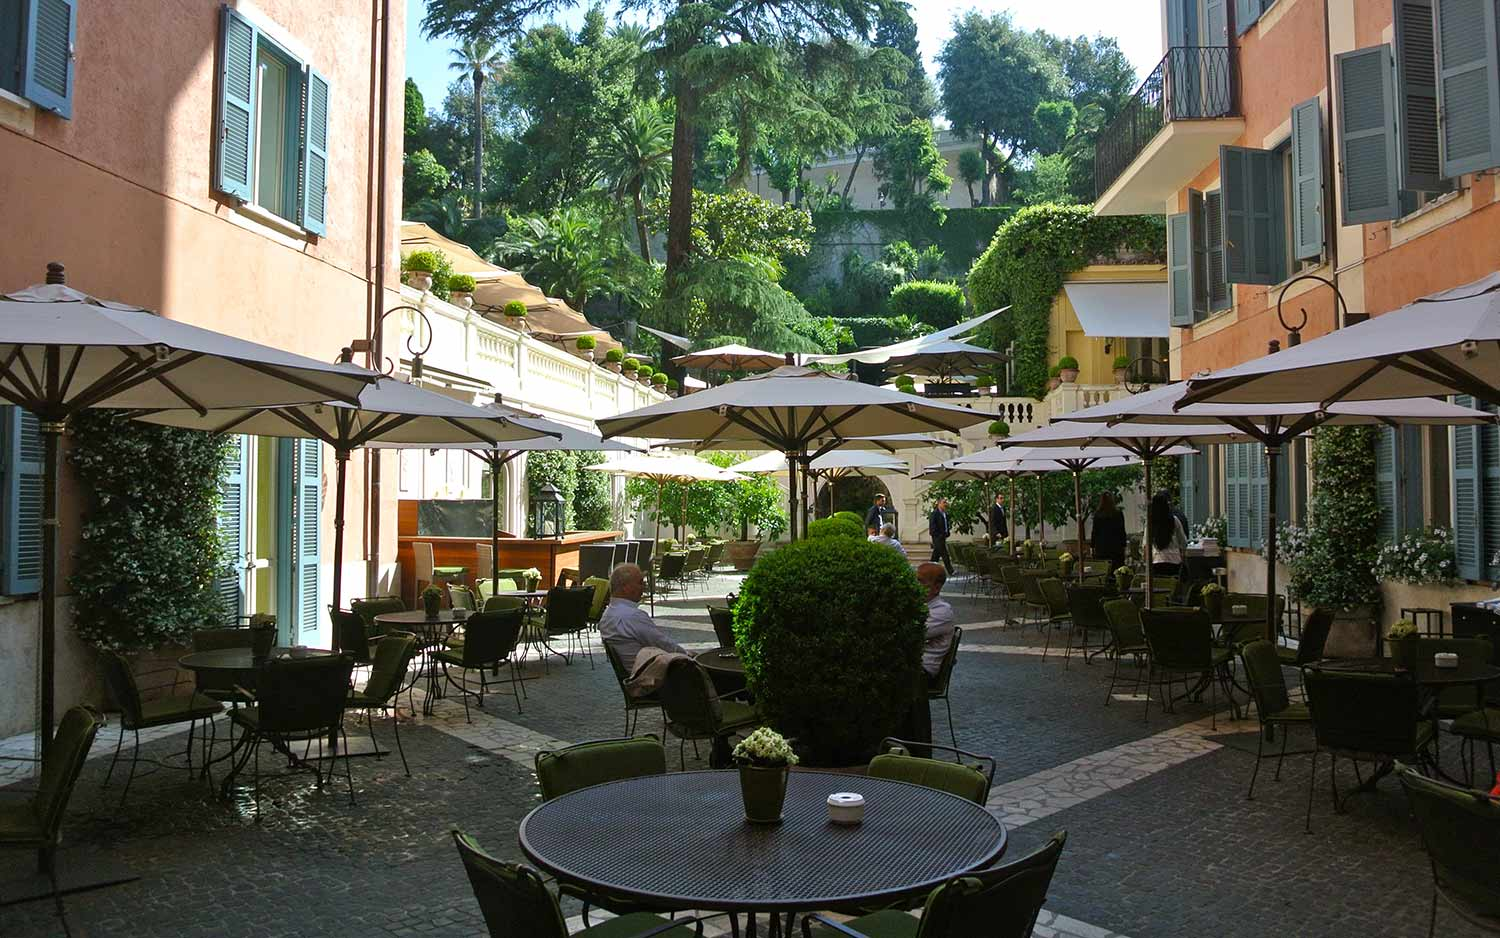 Hotel de russie boutique hotel roma for Hotel boutique rome